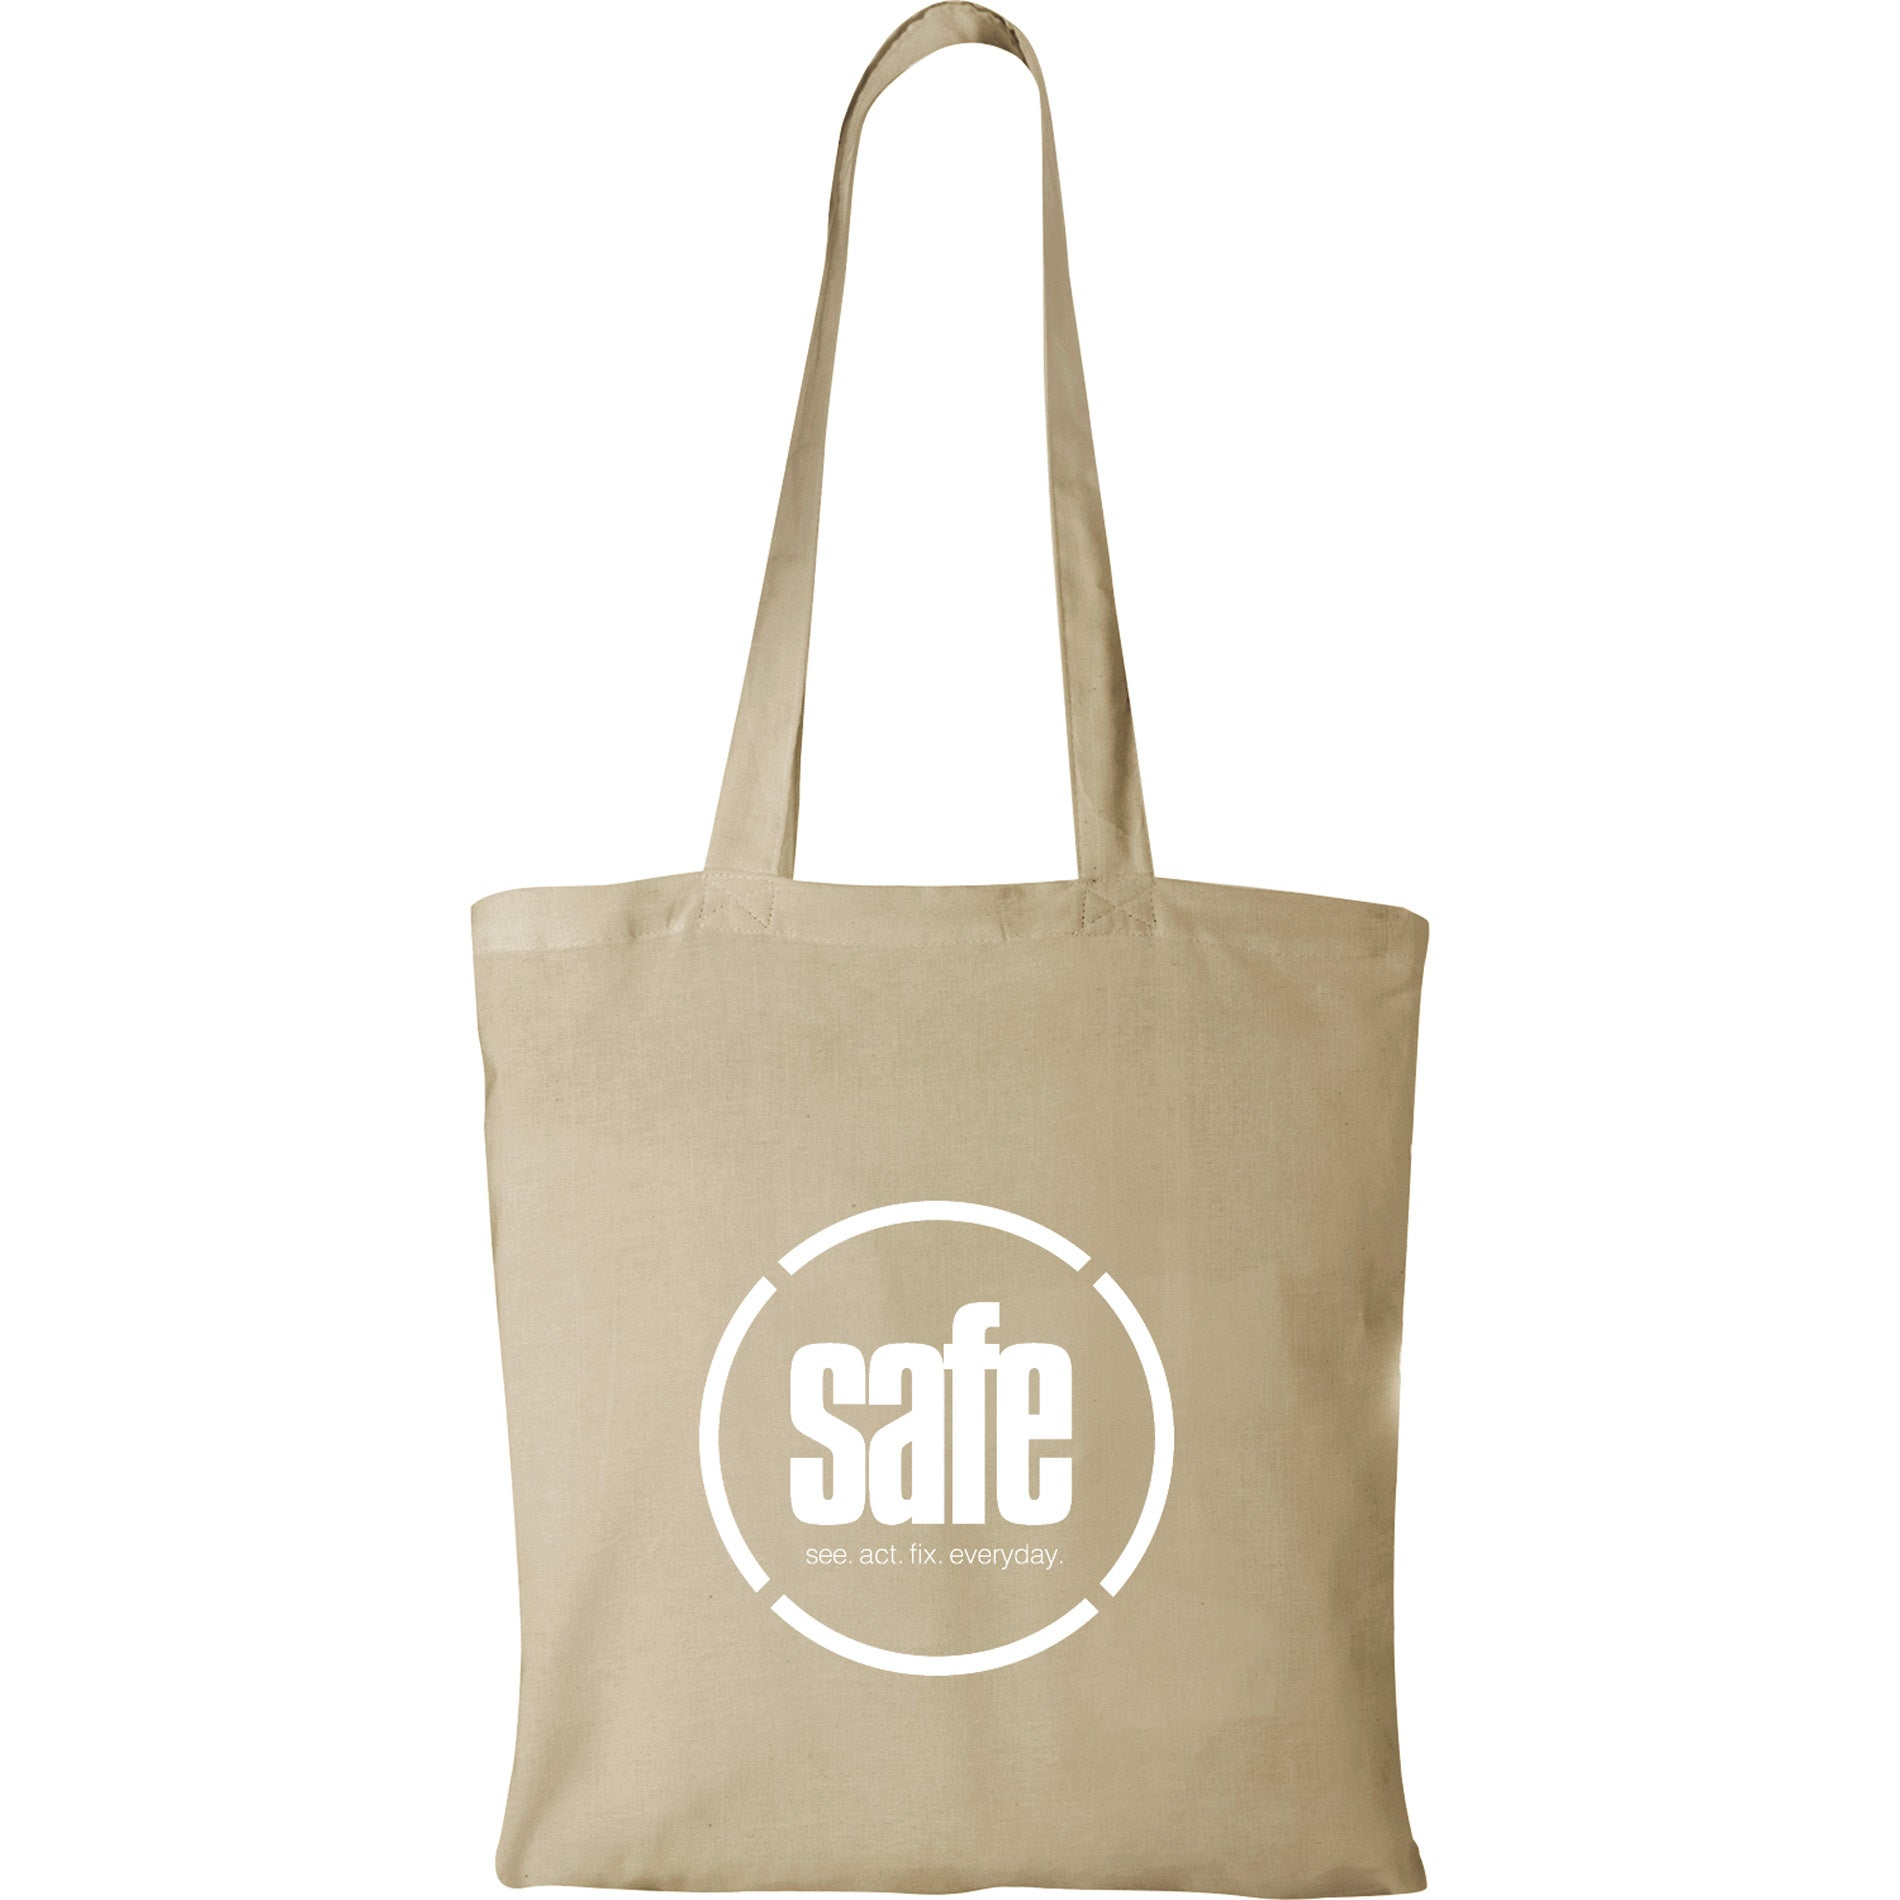 BULLET 100% COTTON CANVAS CAROLINA CONVENTION TOTE